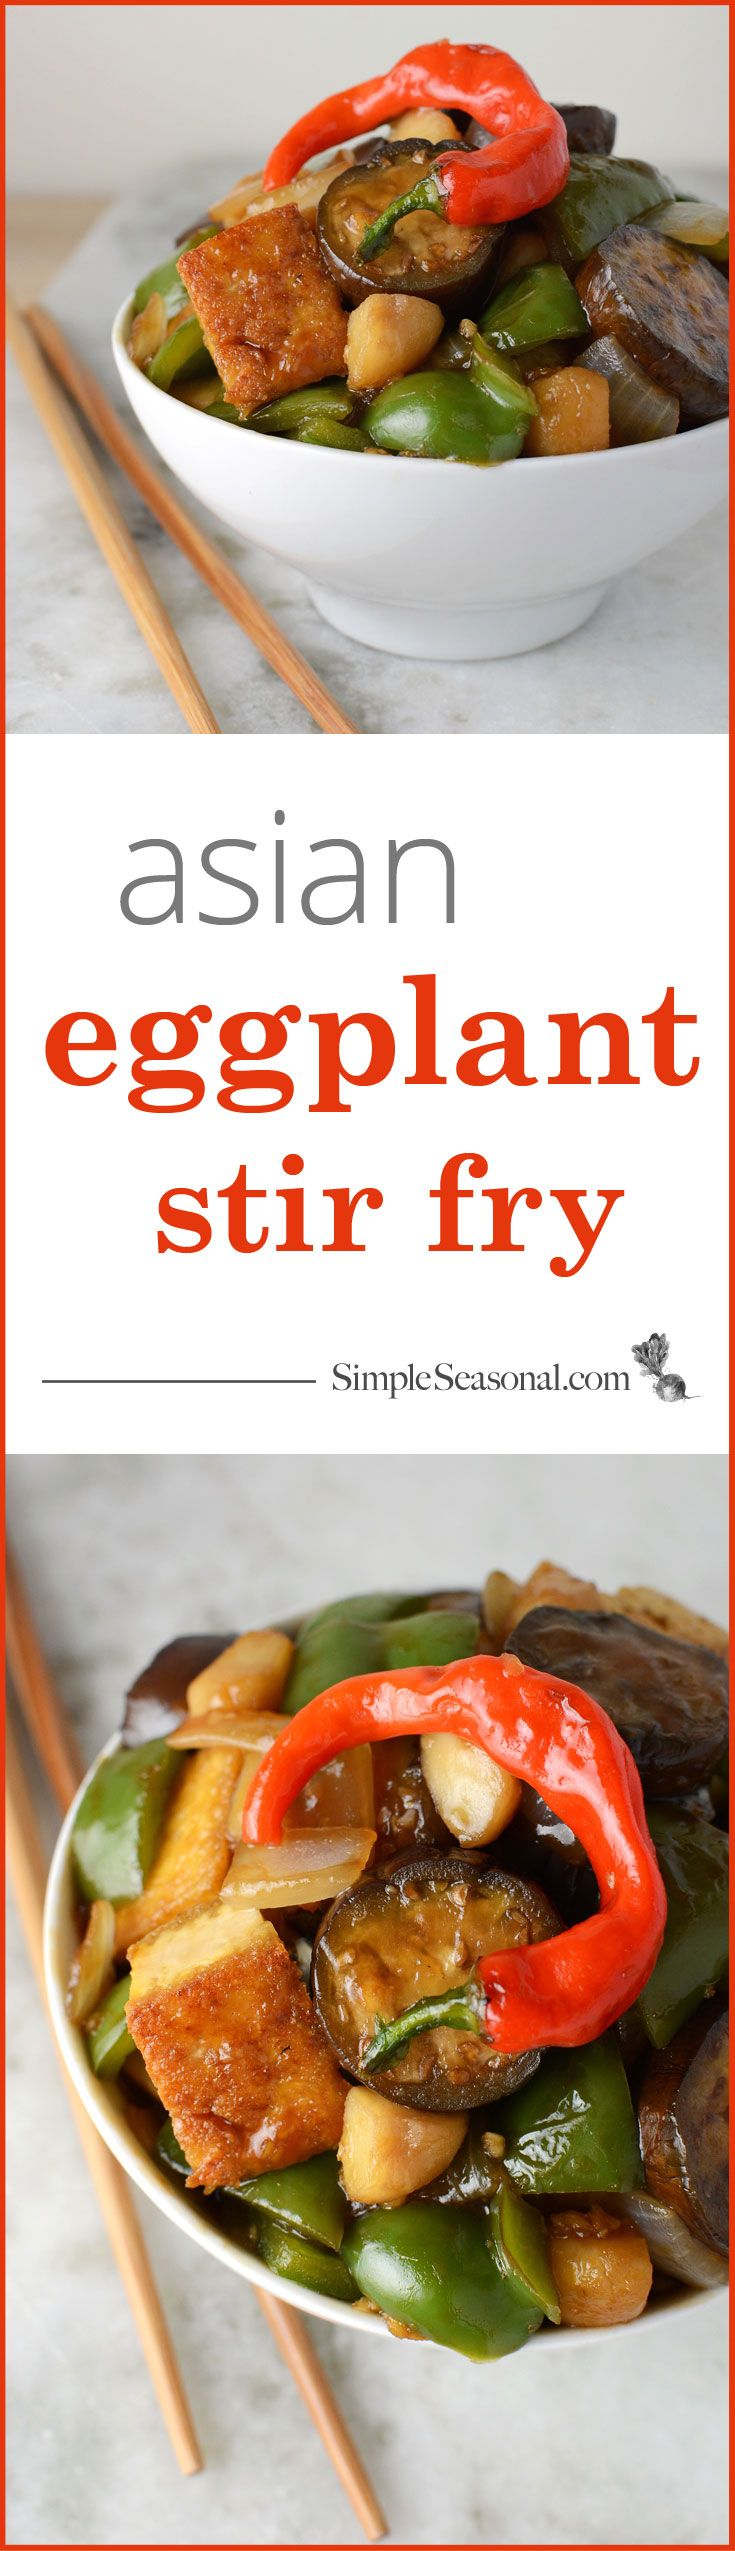 Asian Eggplant Stir Fry - Japanese eggplant shines in this tasty Asian ...